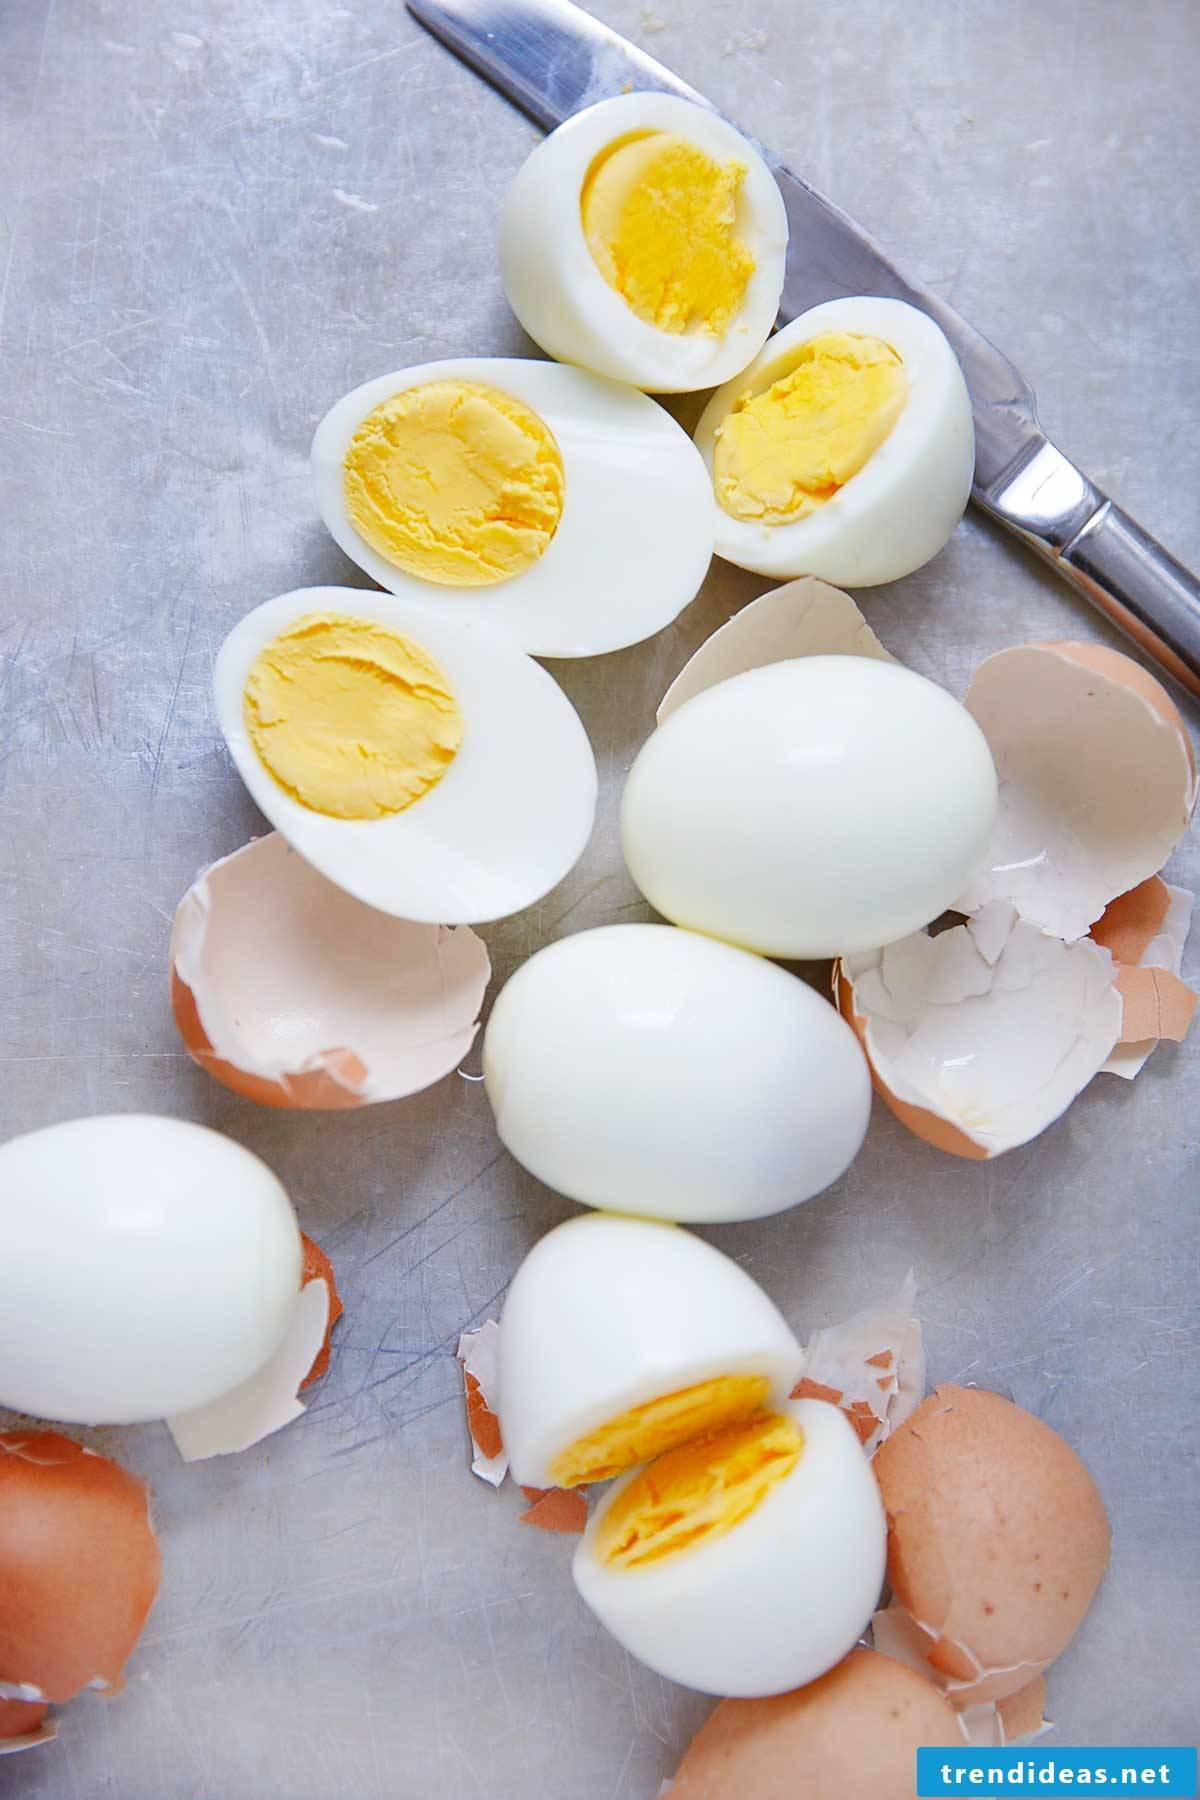 Cook eggs hard